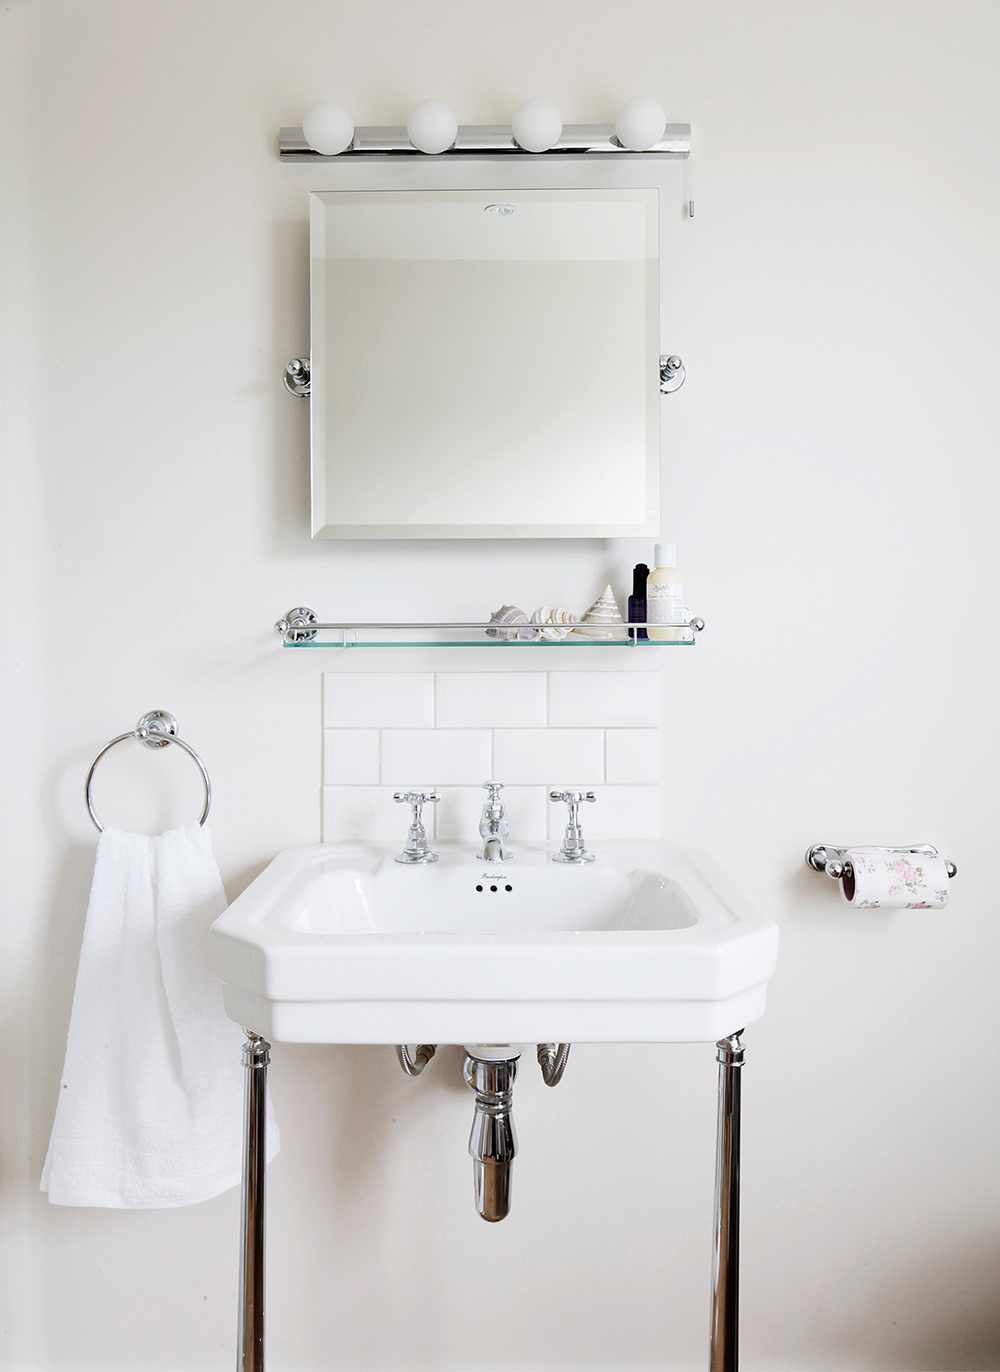 residential-renovation-victorian-house-interior-designer-bathroom-washstand-white-hollywood-bulbs-mirror-timeless-characterful-bathroom